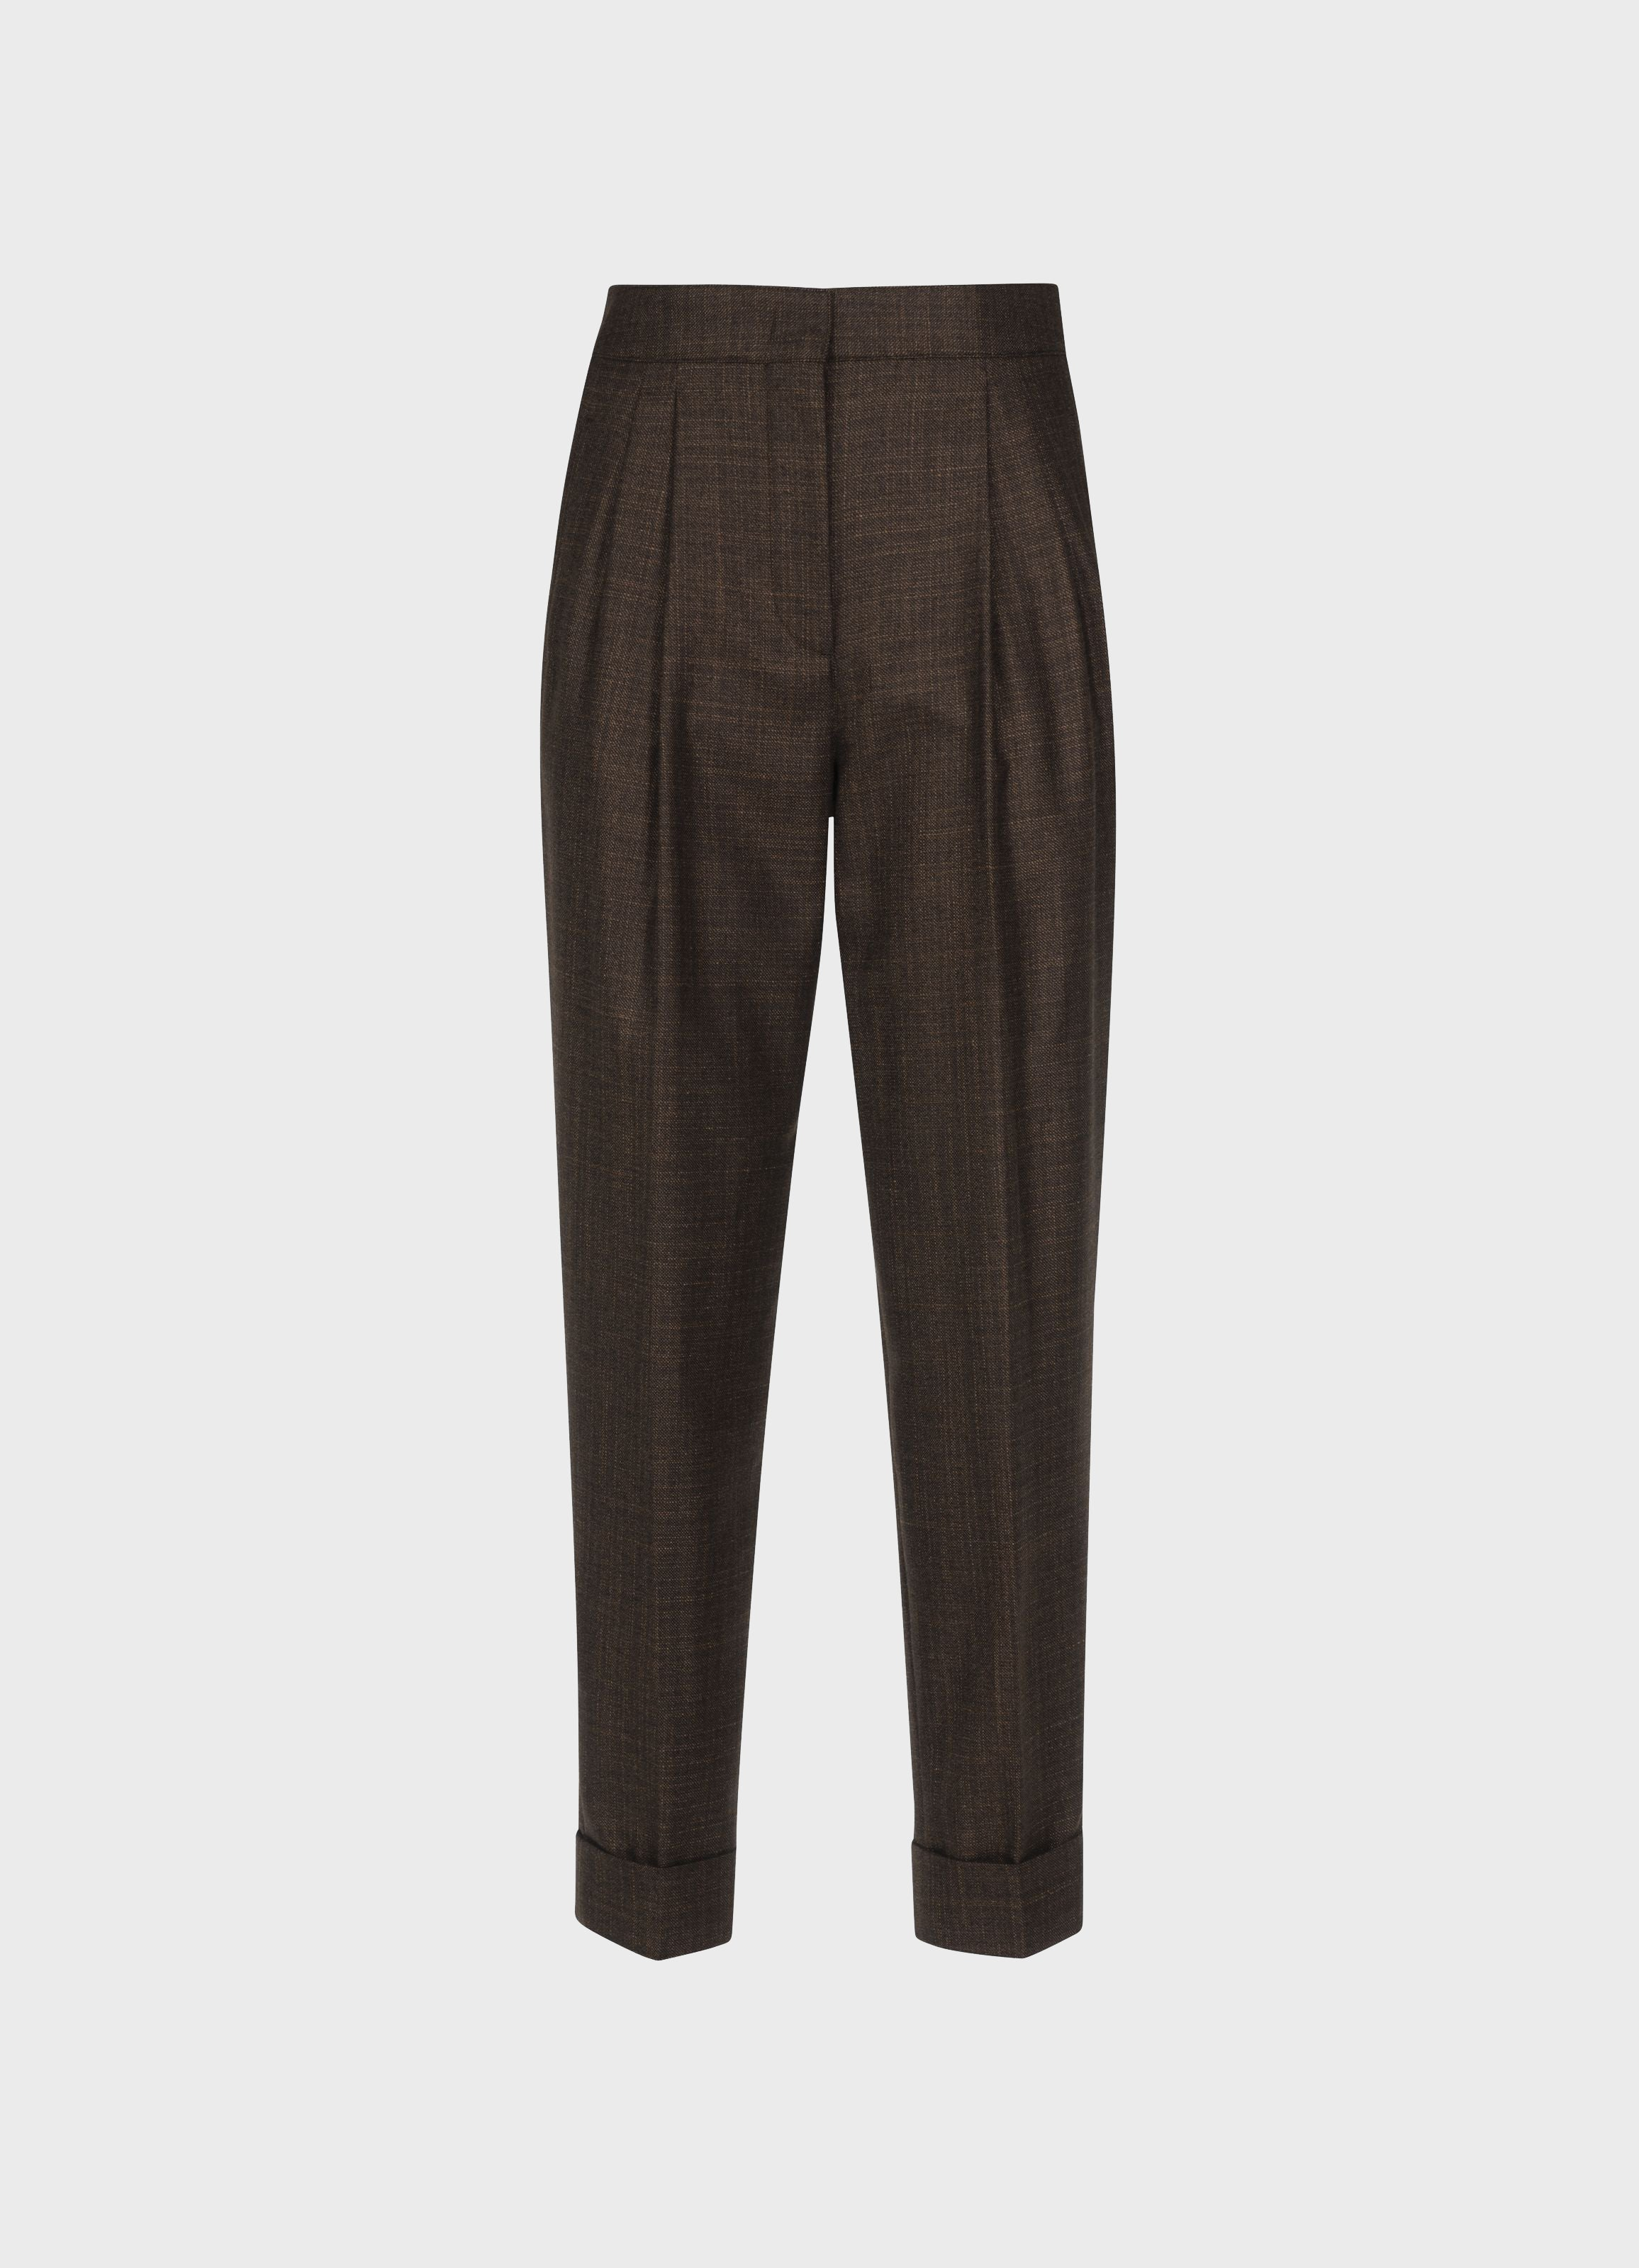 Leblon Silk-Cashmere high-waist trousers